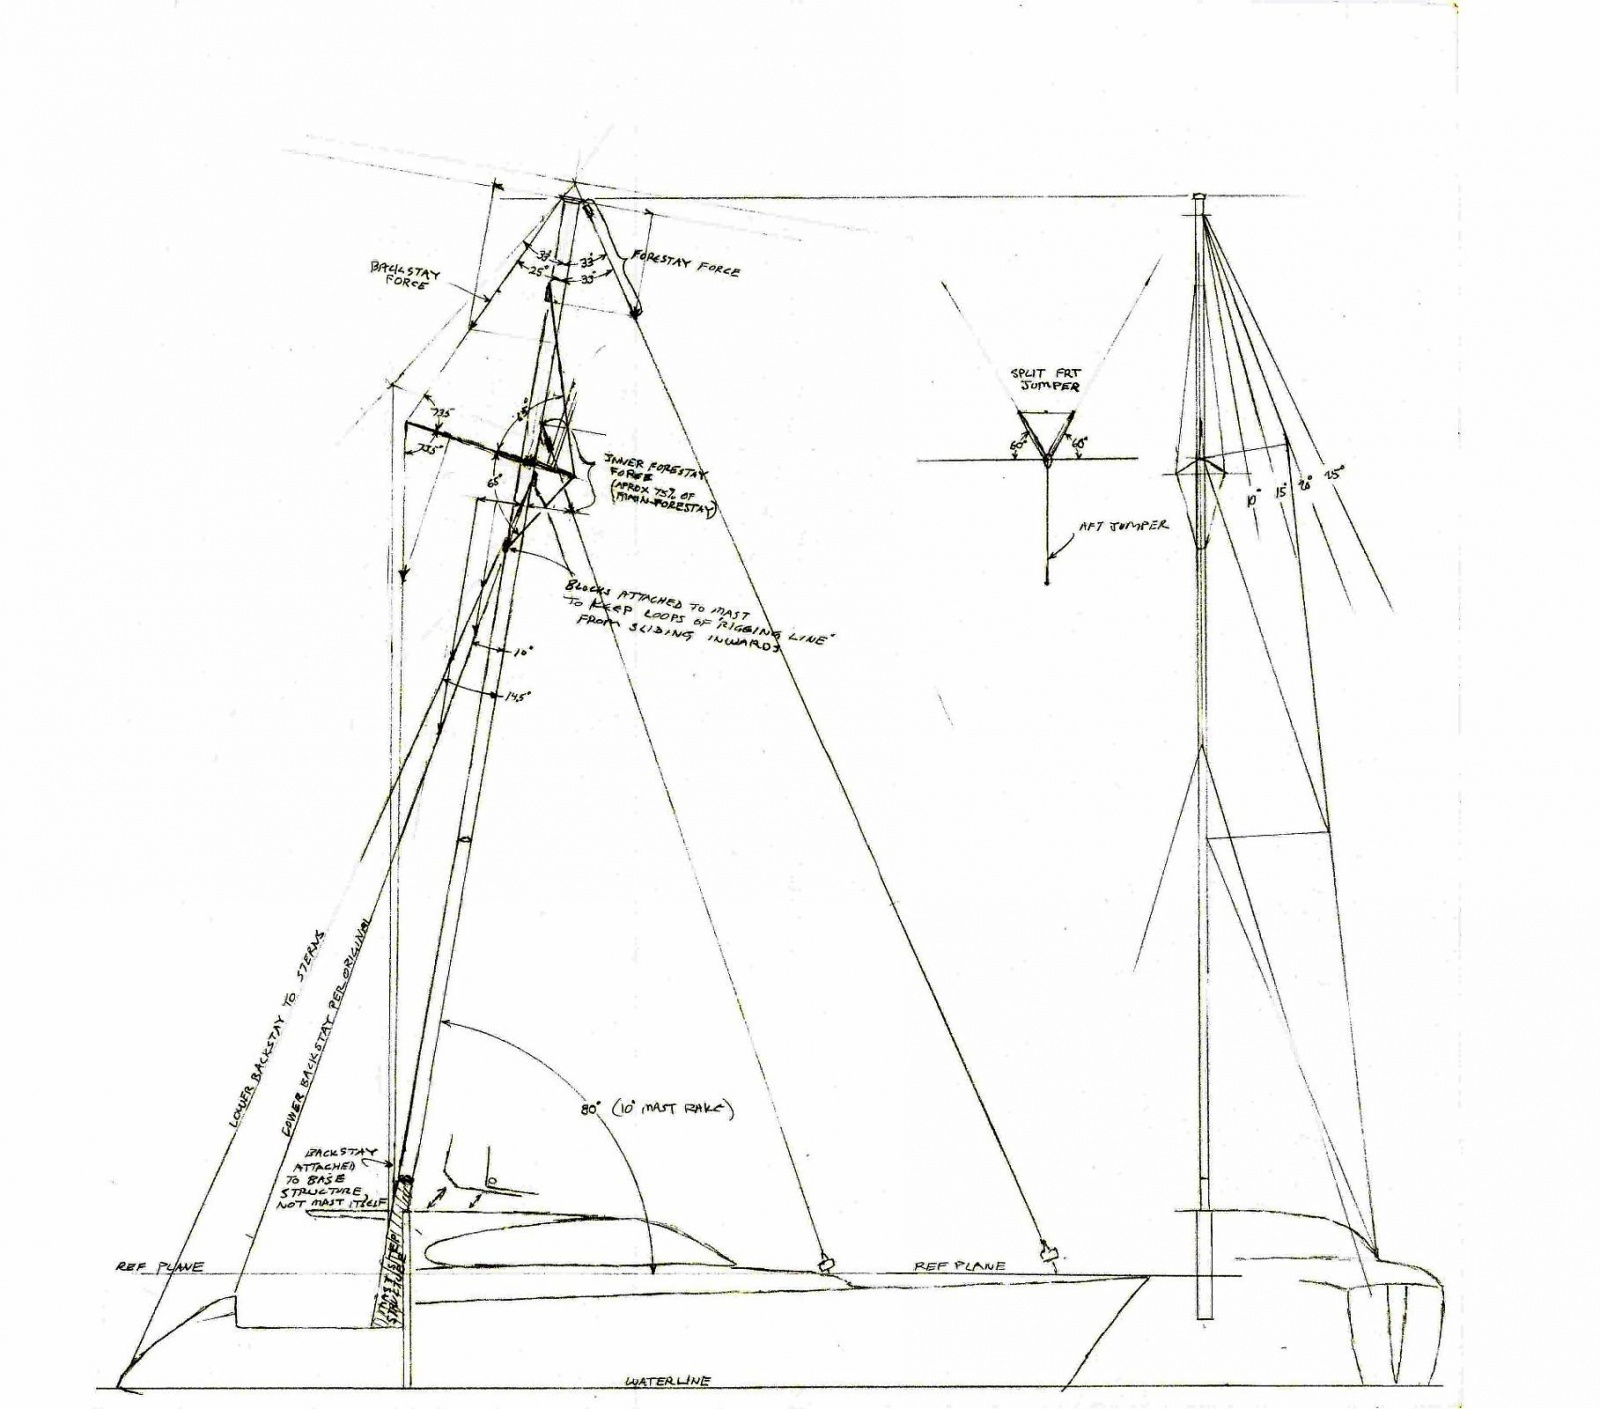 Click image for larger version  Name:Rigging Force Review dwg.jpg Views:184 Size:356.4 KB ID:82915